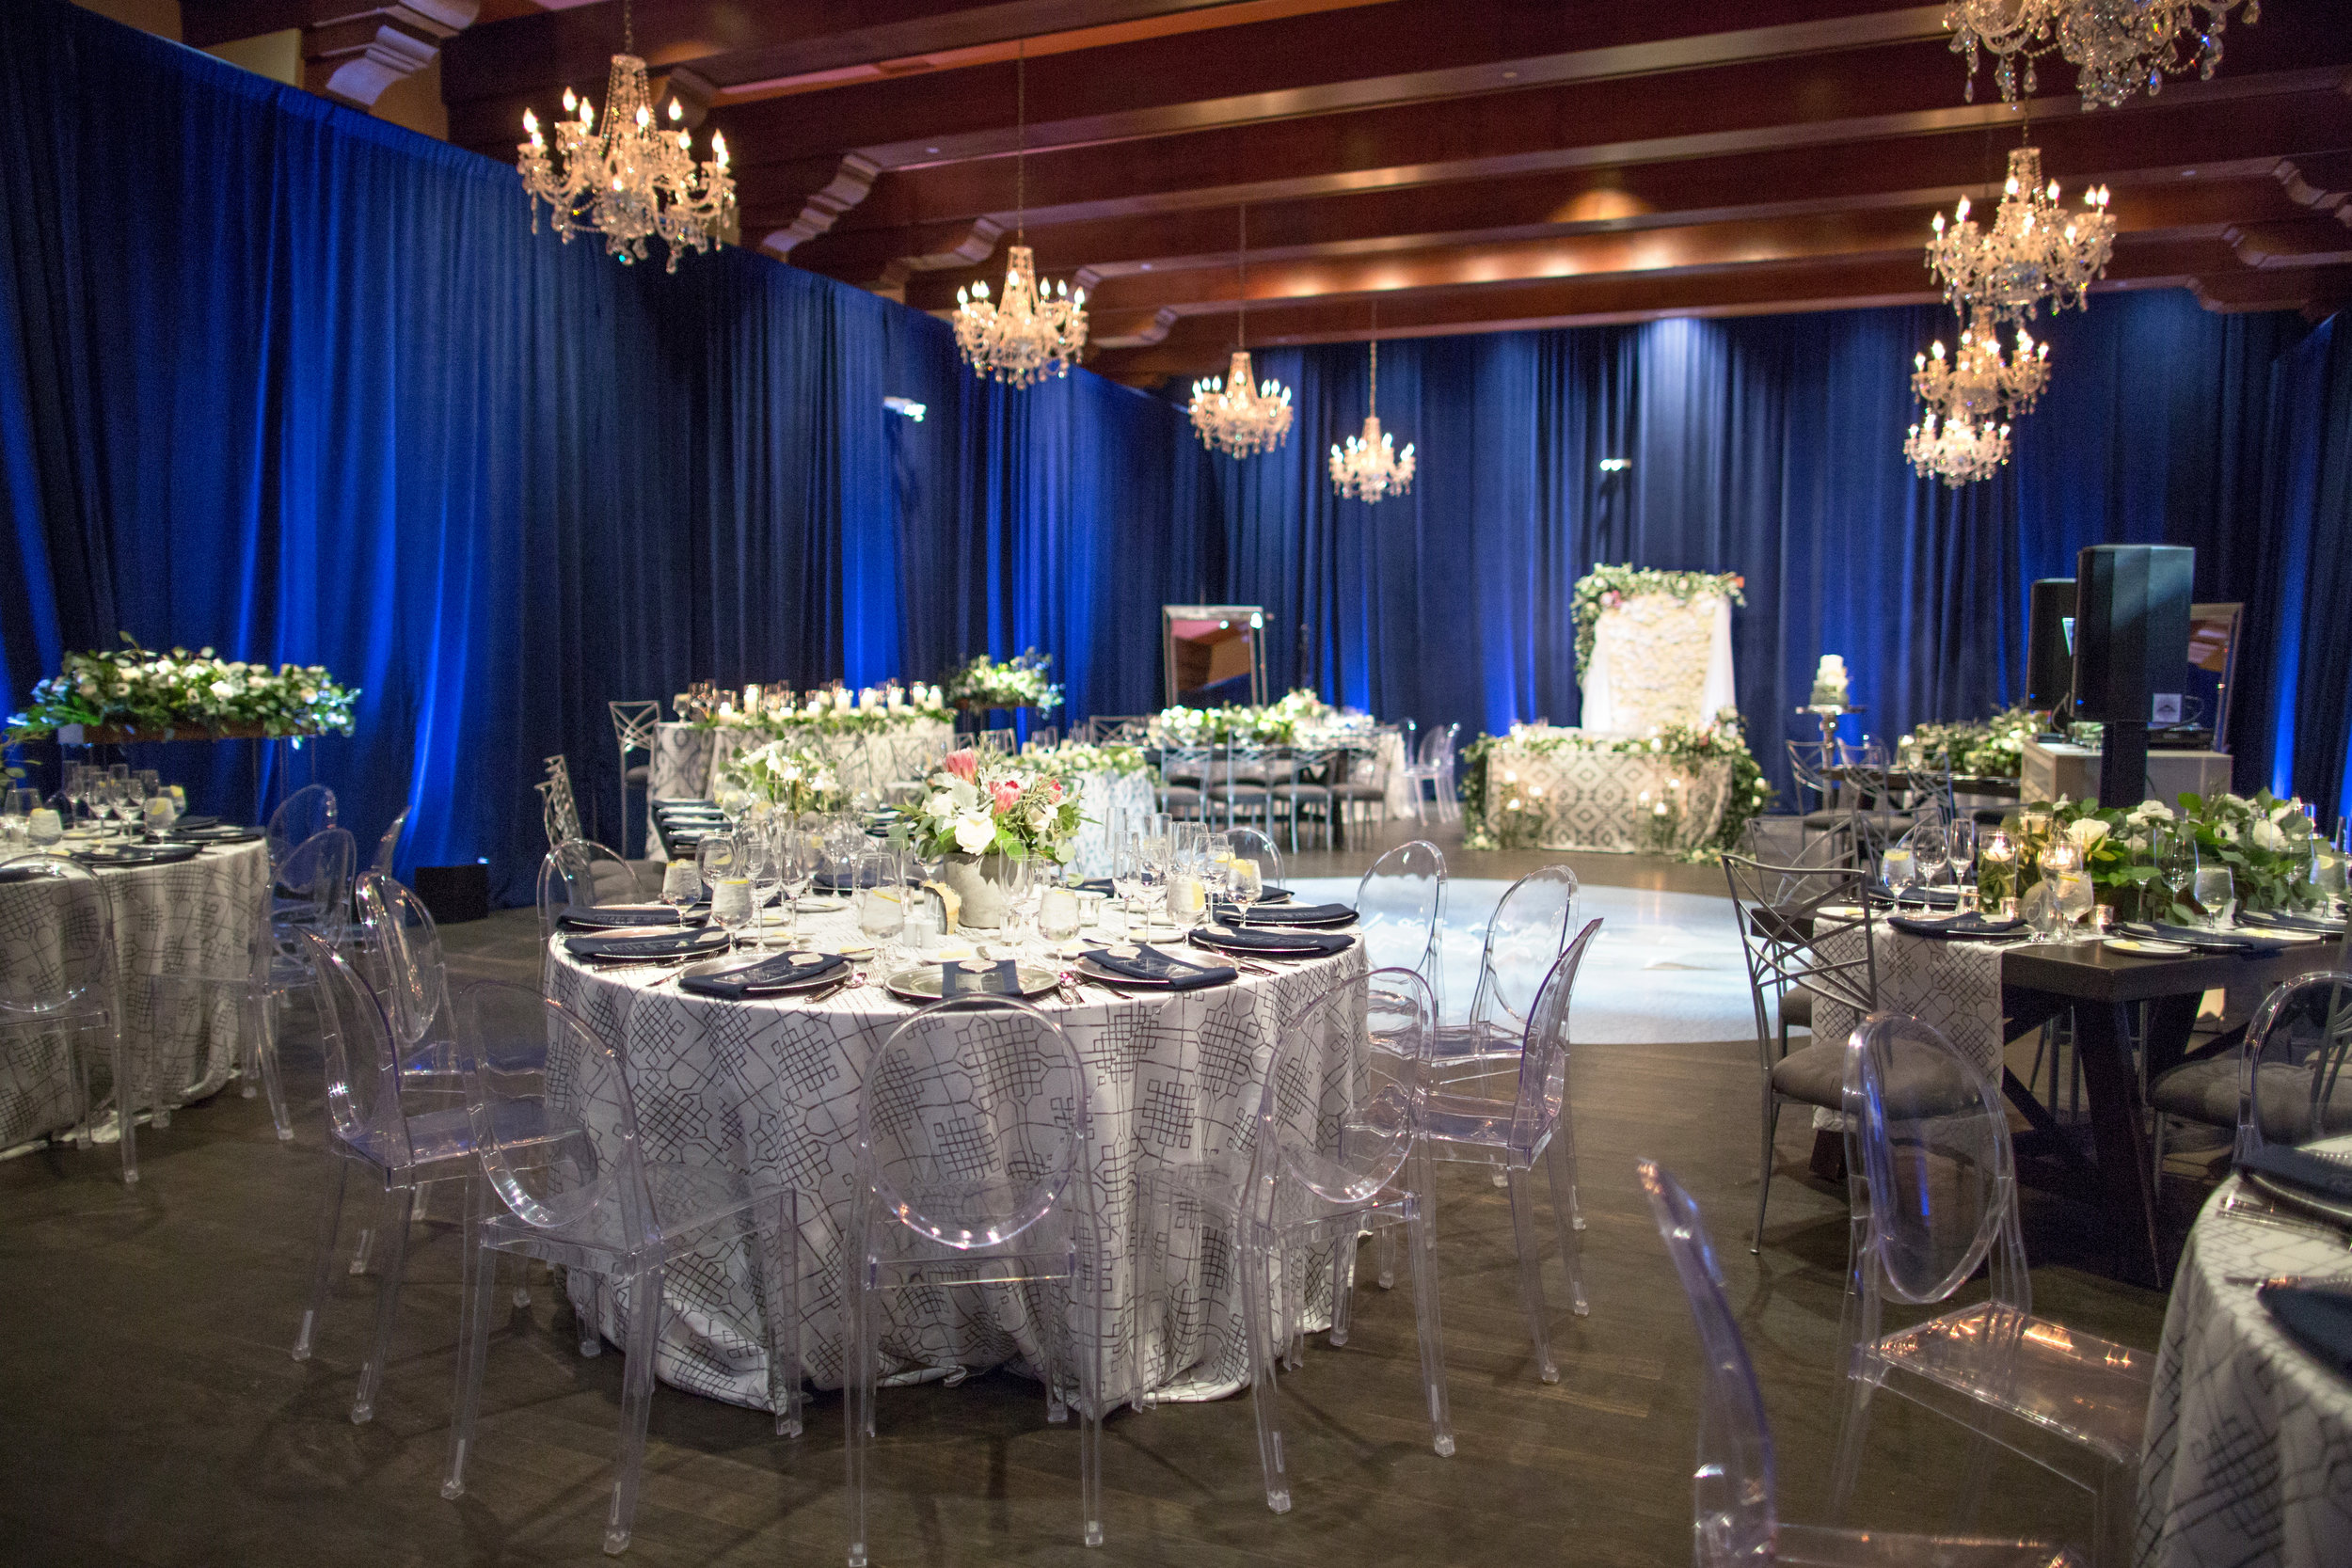 40 wedding reception blue velvet room chandelier wedding room white wedding flowers custom dance floor hydrangea backdrop clear ghost chair grey linen wedding reception dinner Life Design Events photos by Melissa Jill Photography.jpg